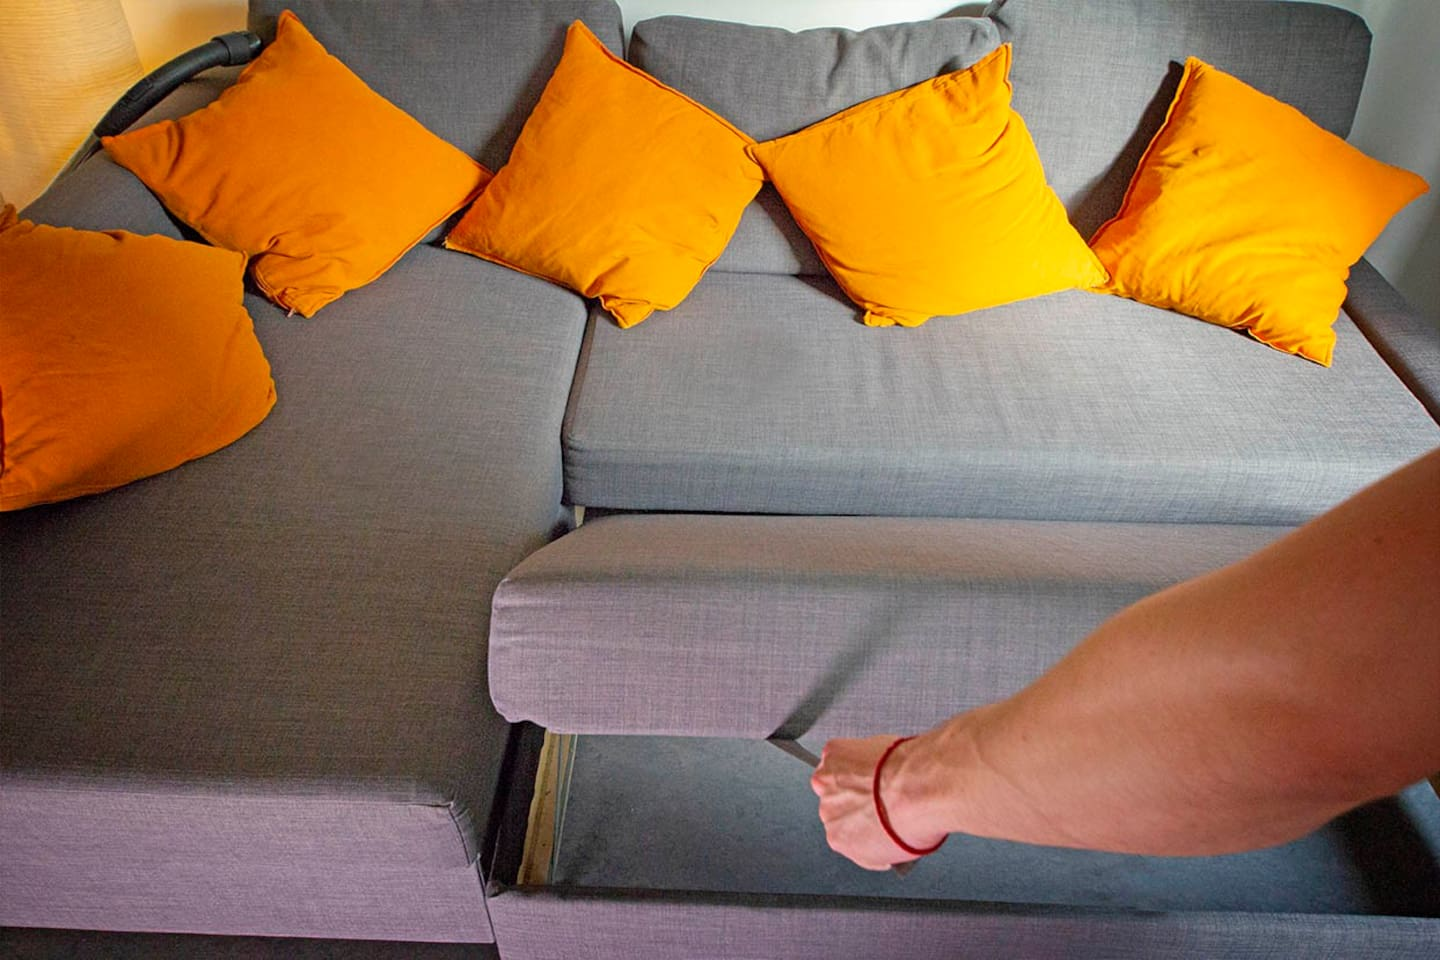 The bed sofa converts easily into a bed.